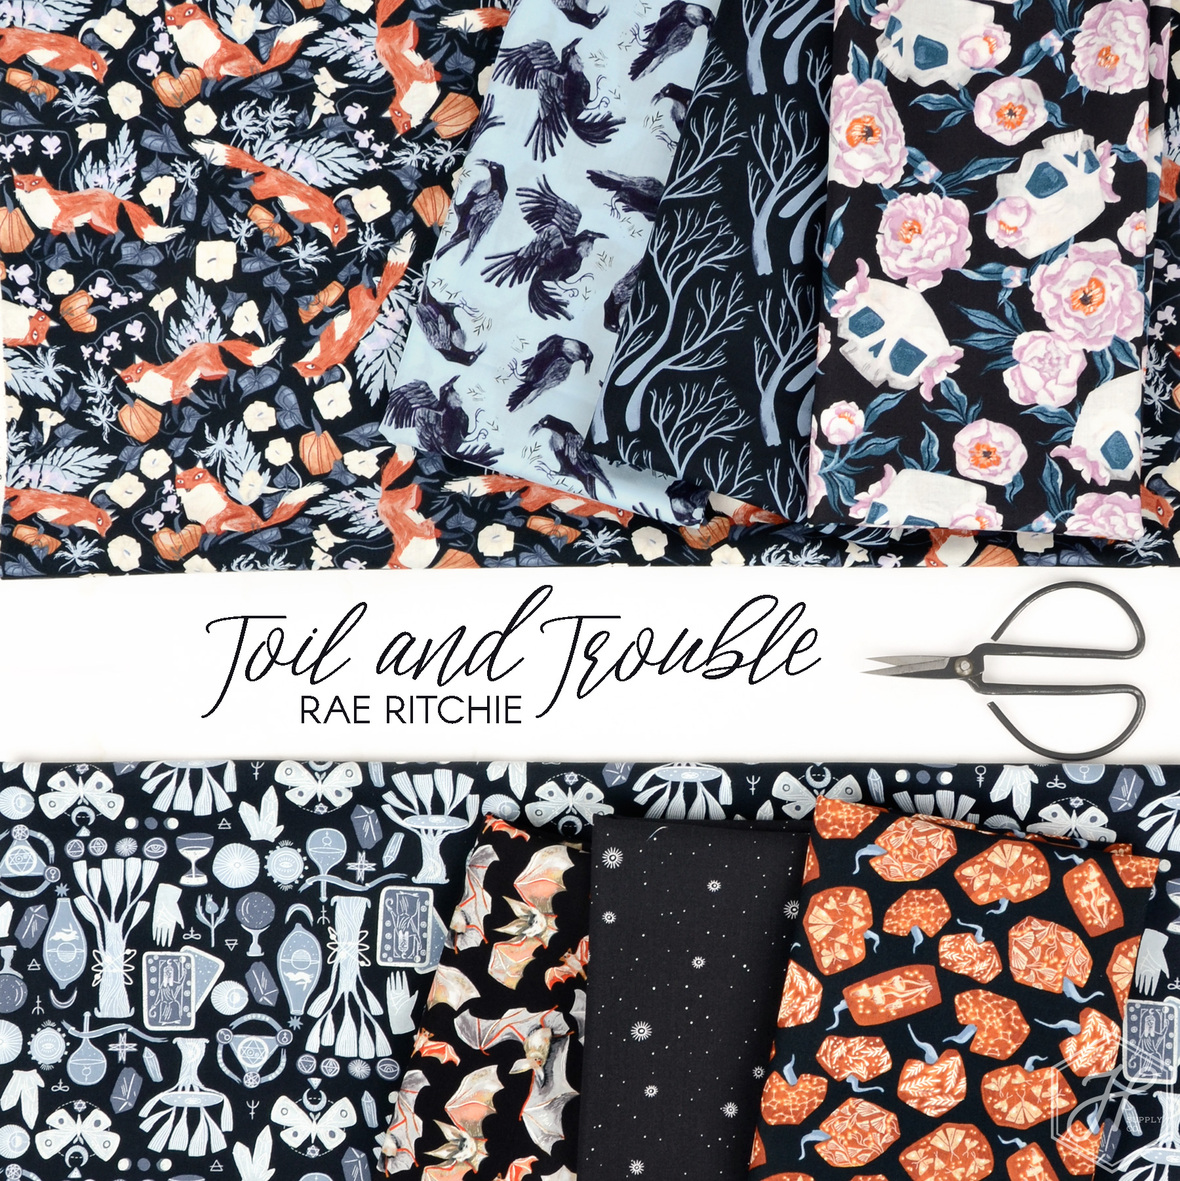 Toil-and-Trouble-Rae-Ritchie-for-Dear-Stella-fabric-at-Hawthorne-Supply-Co